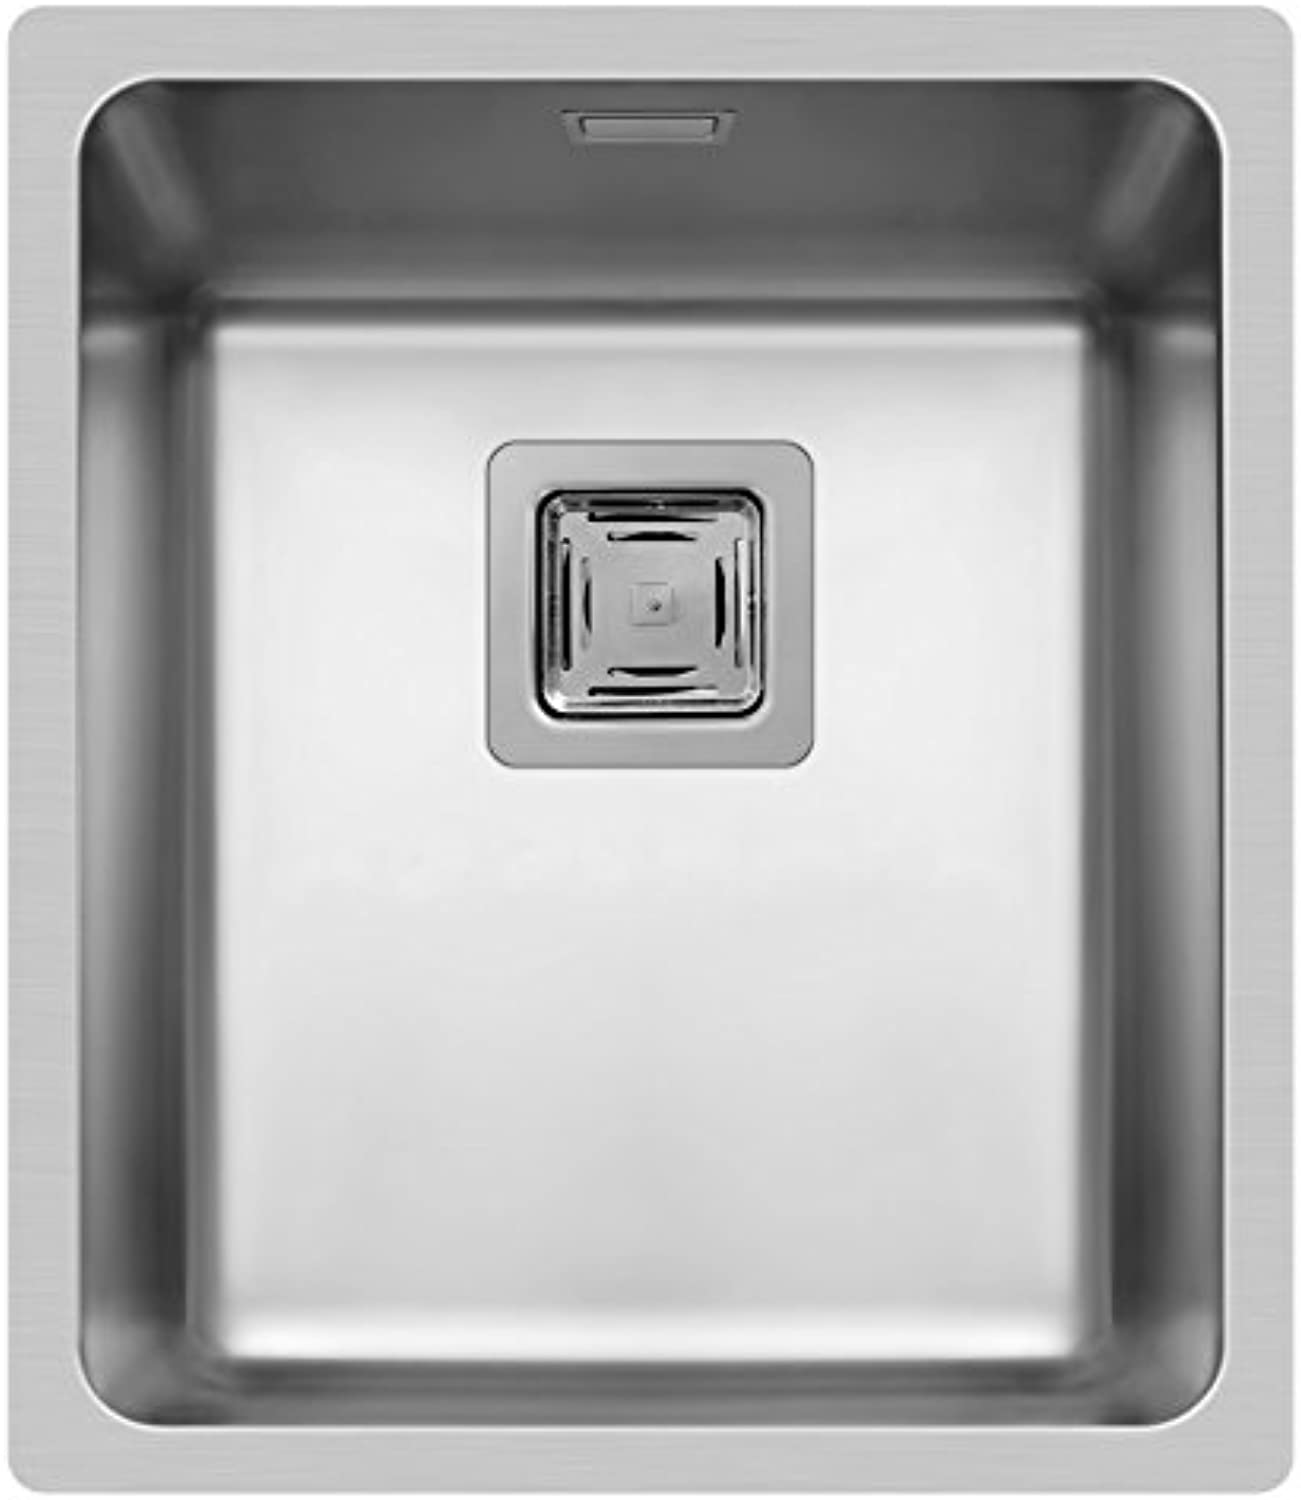 Flush-Mounted (17x40) 1B Inset Sink Polished Stainless Steel, 101023601